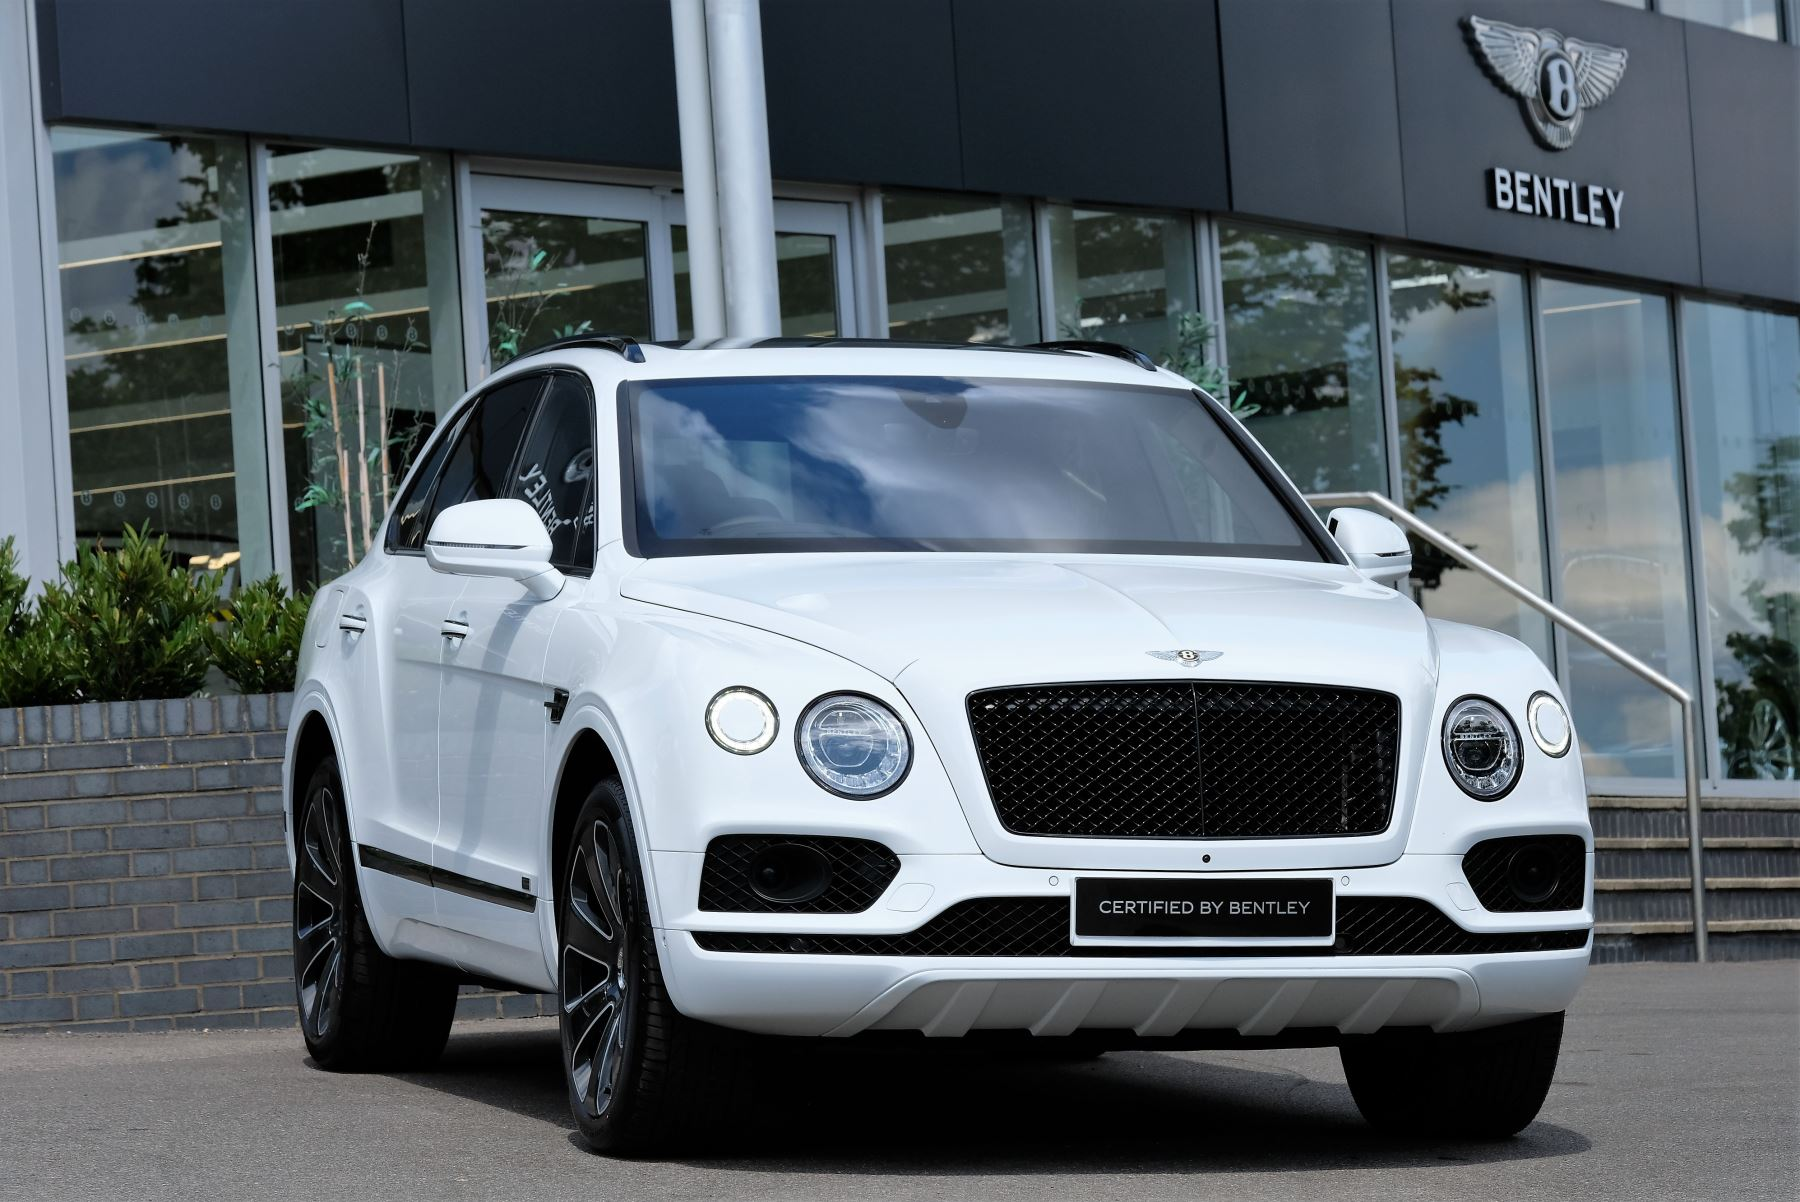 Bentley Bentayga V8 4.0 V8 Design Series 5dr Automatic Estate (2020)